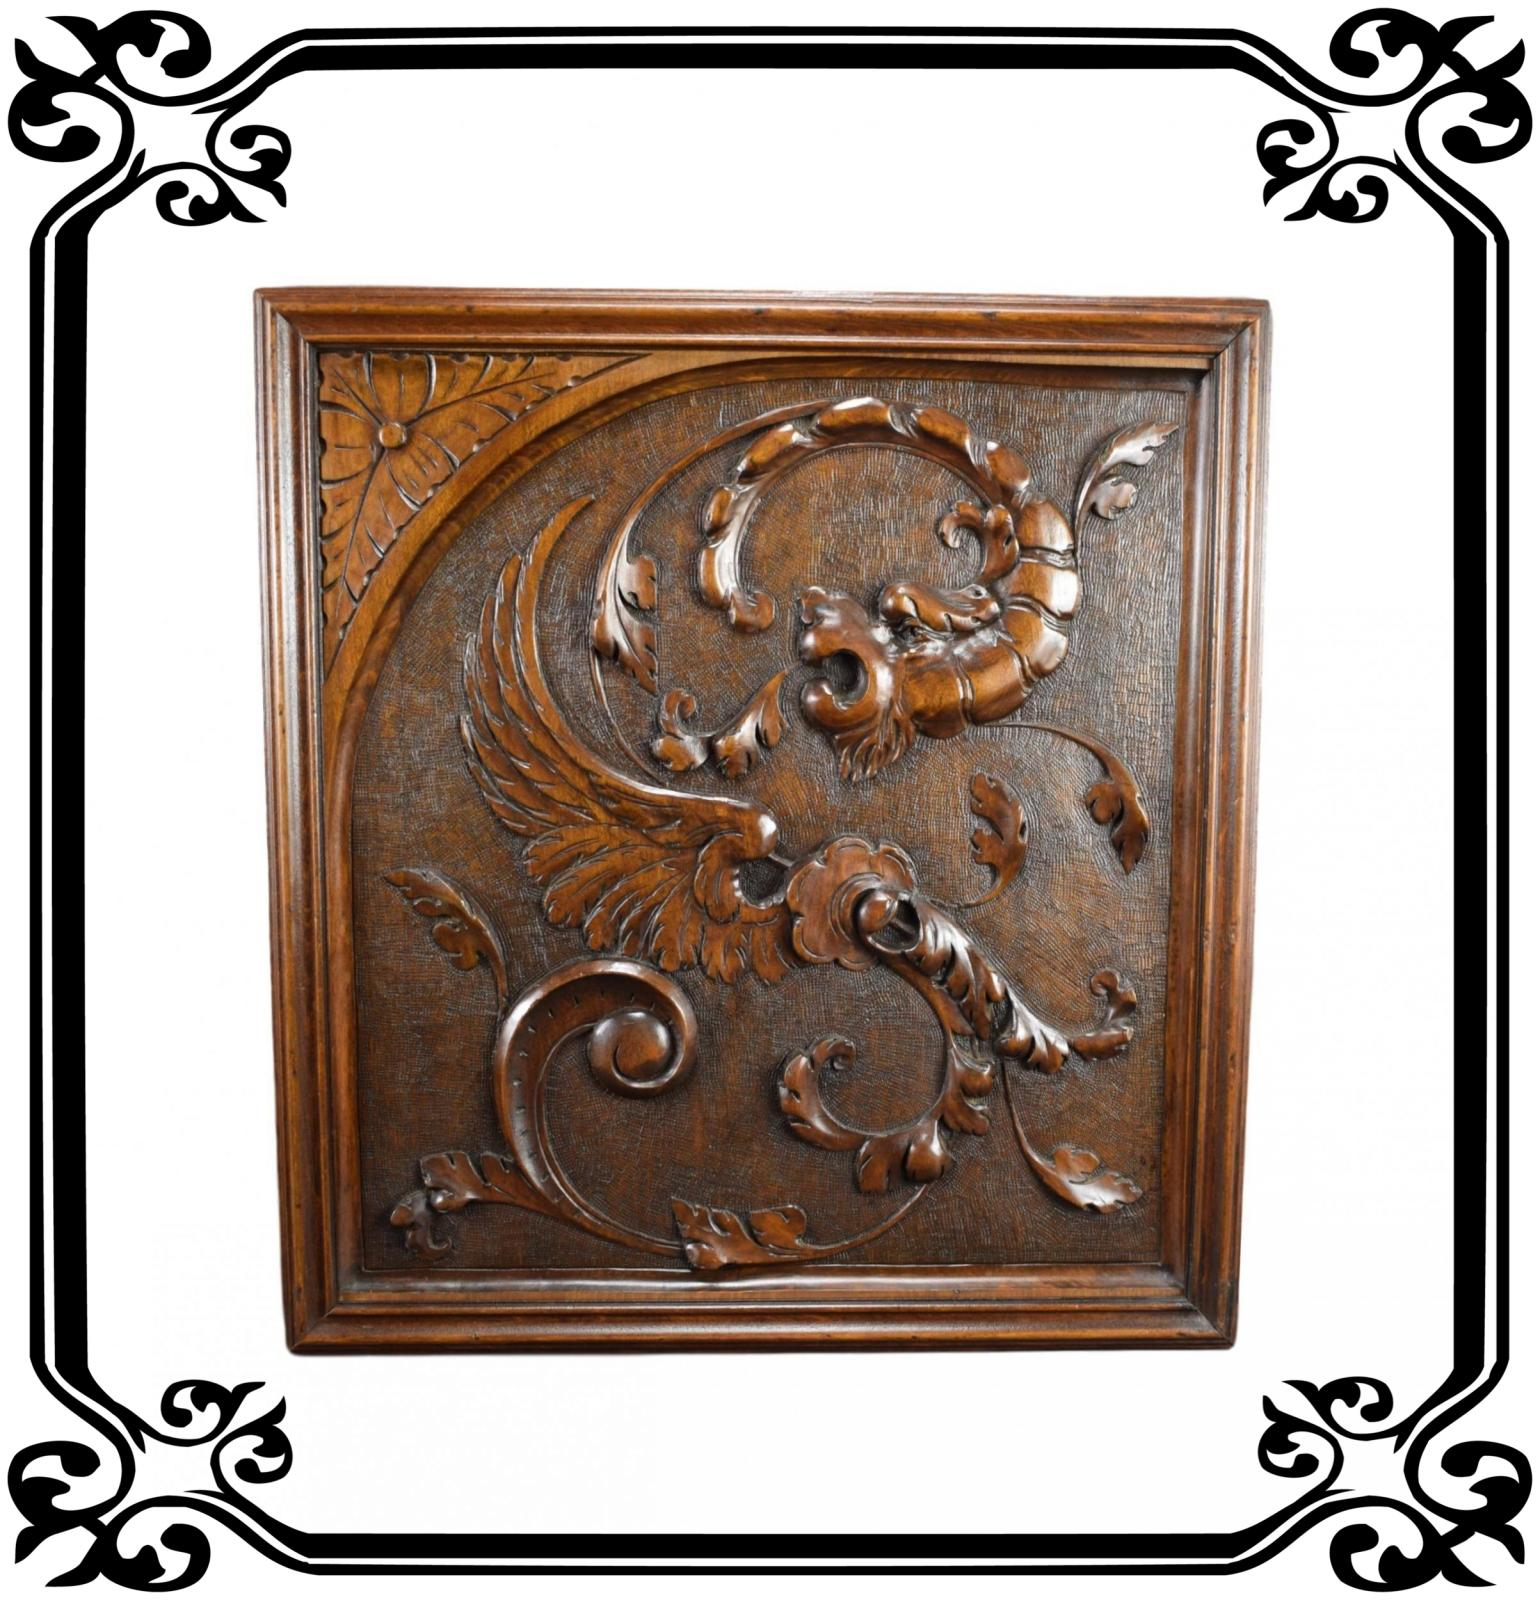 Carved Wood Panel Chimera 1 - Charmantiques